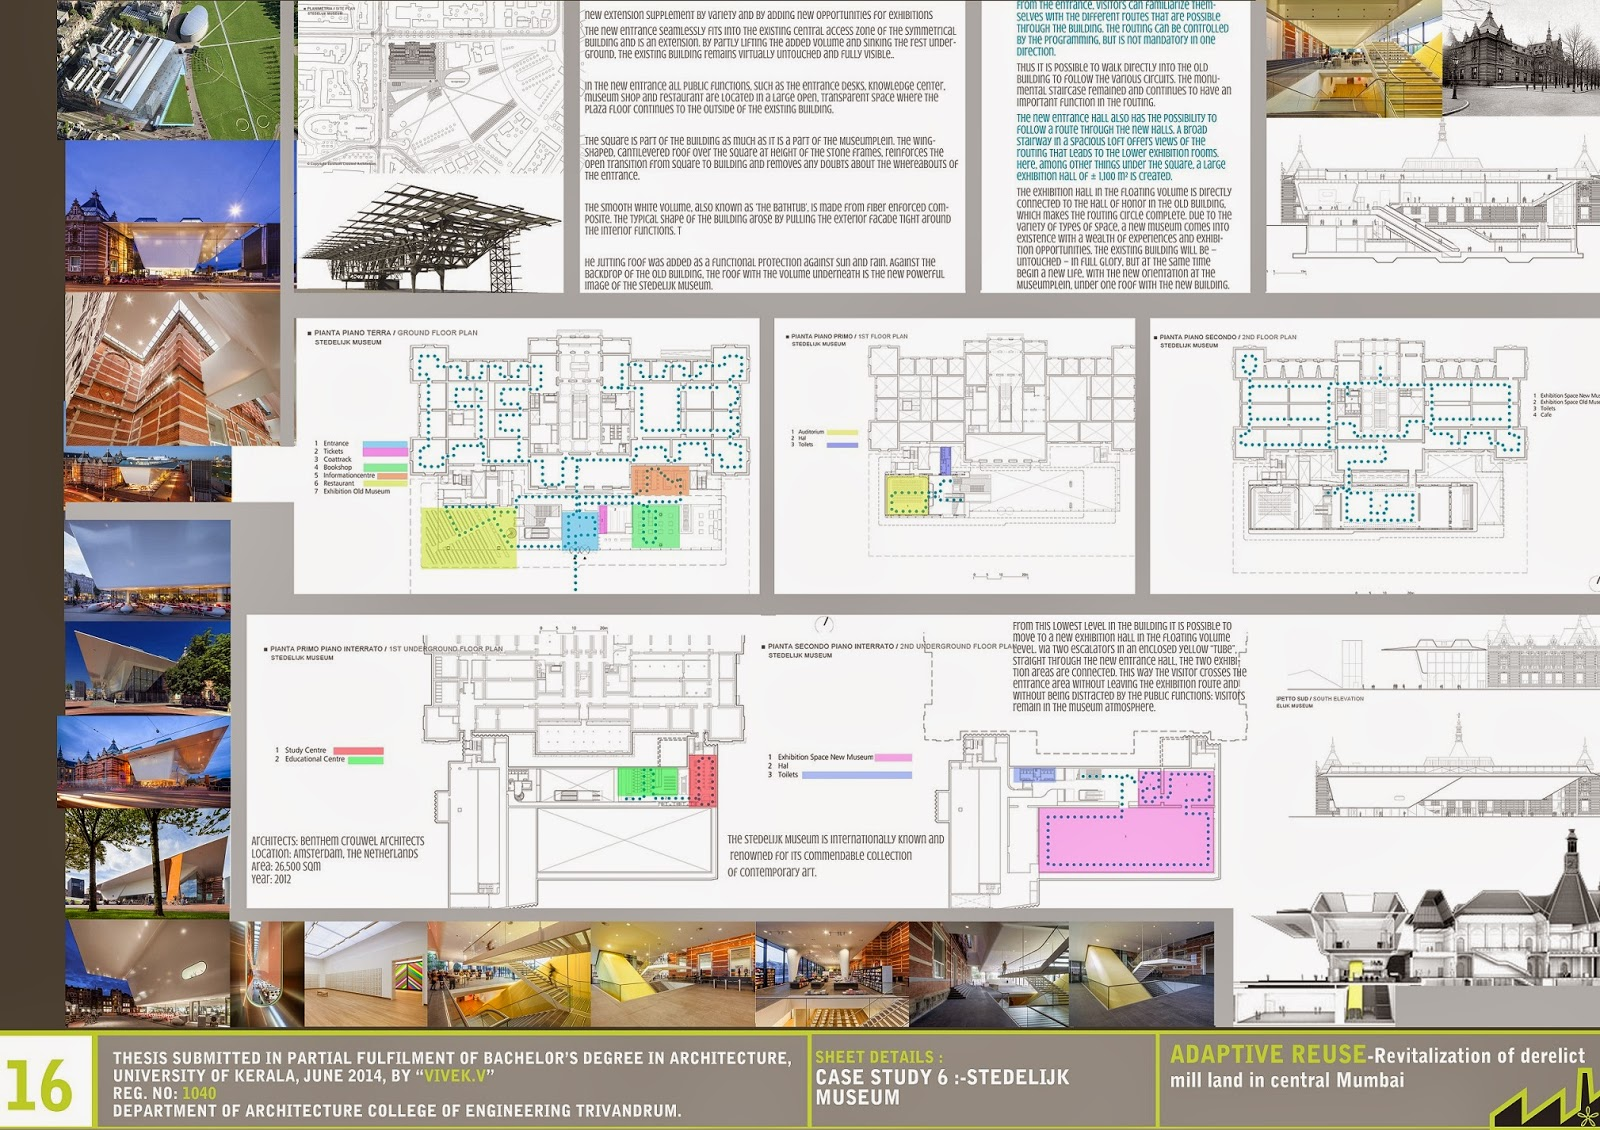 Architecture Thesis Report On Museum - Afit Thesis